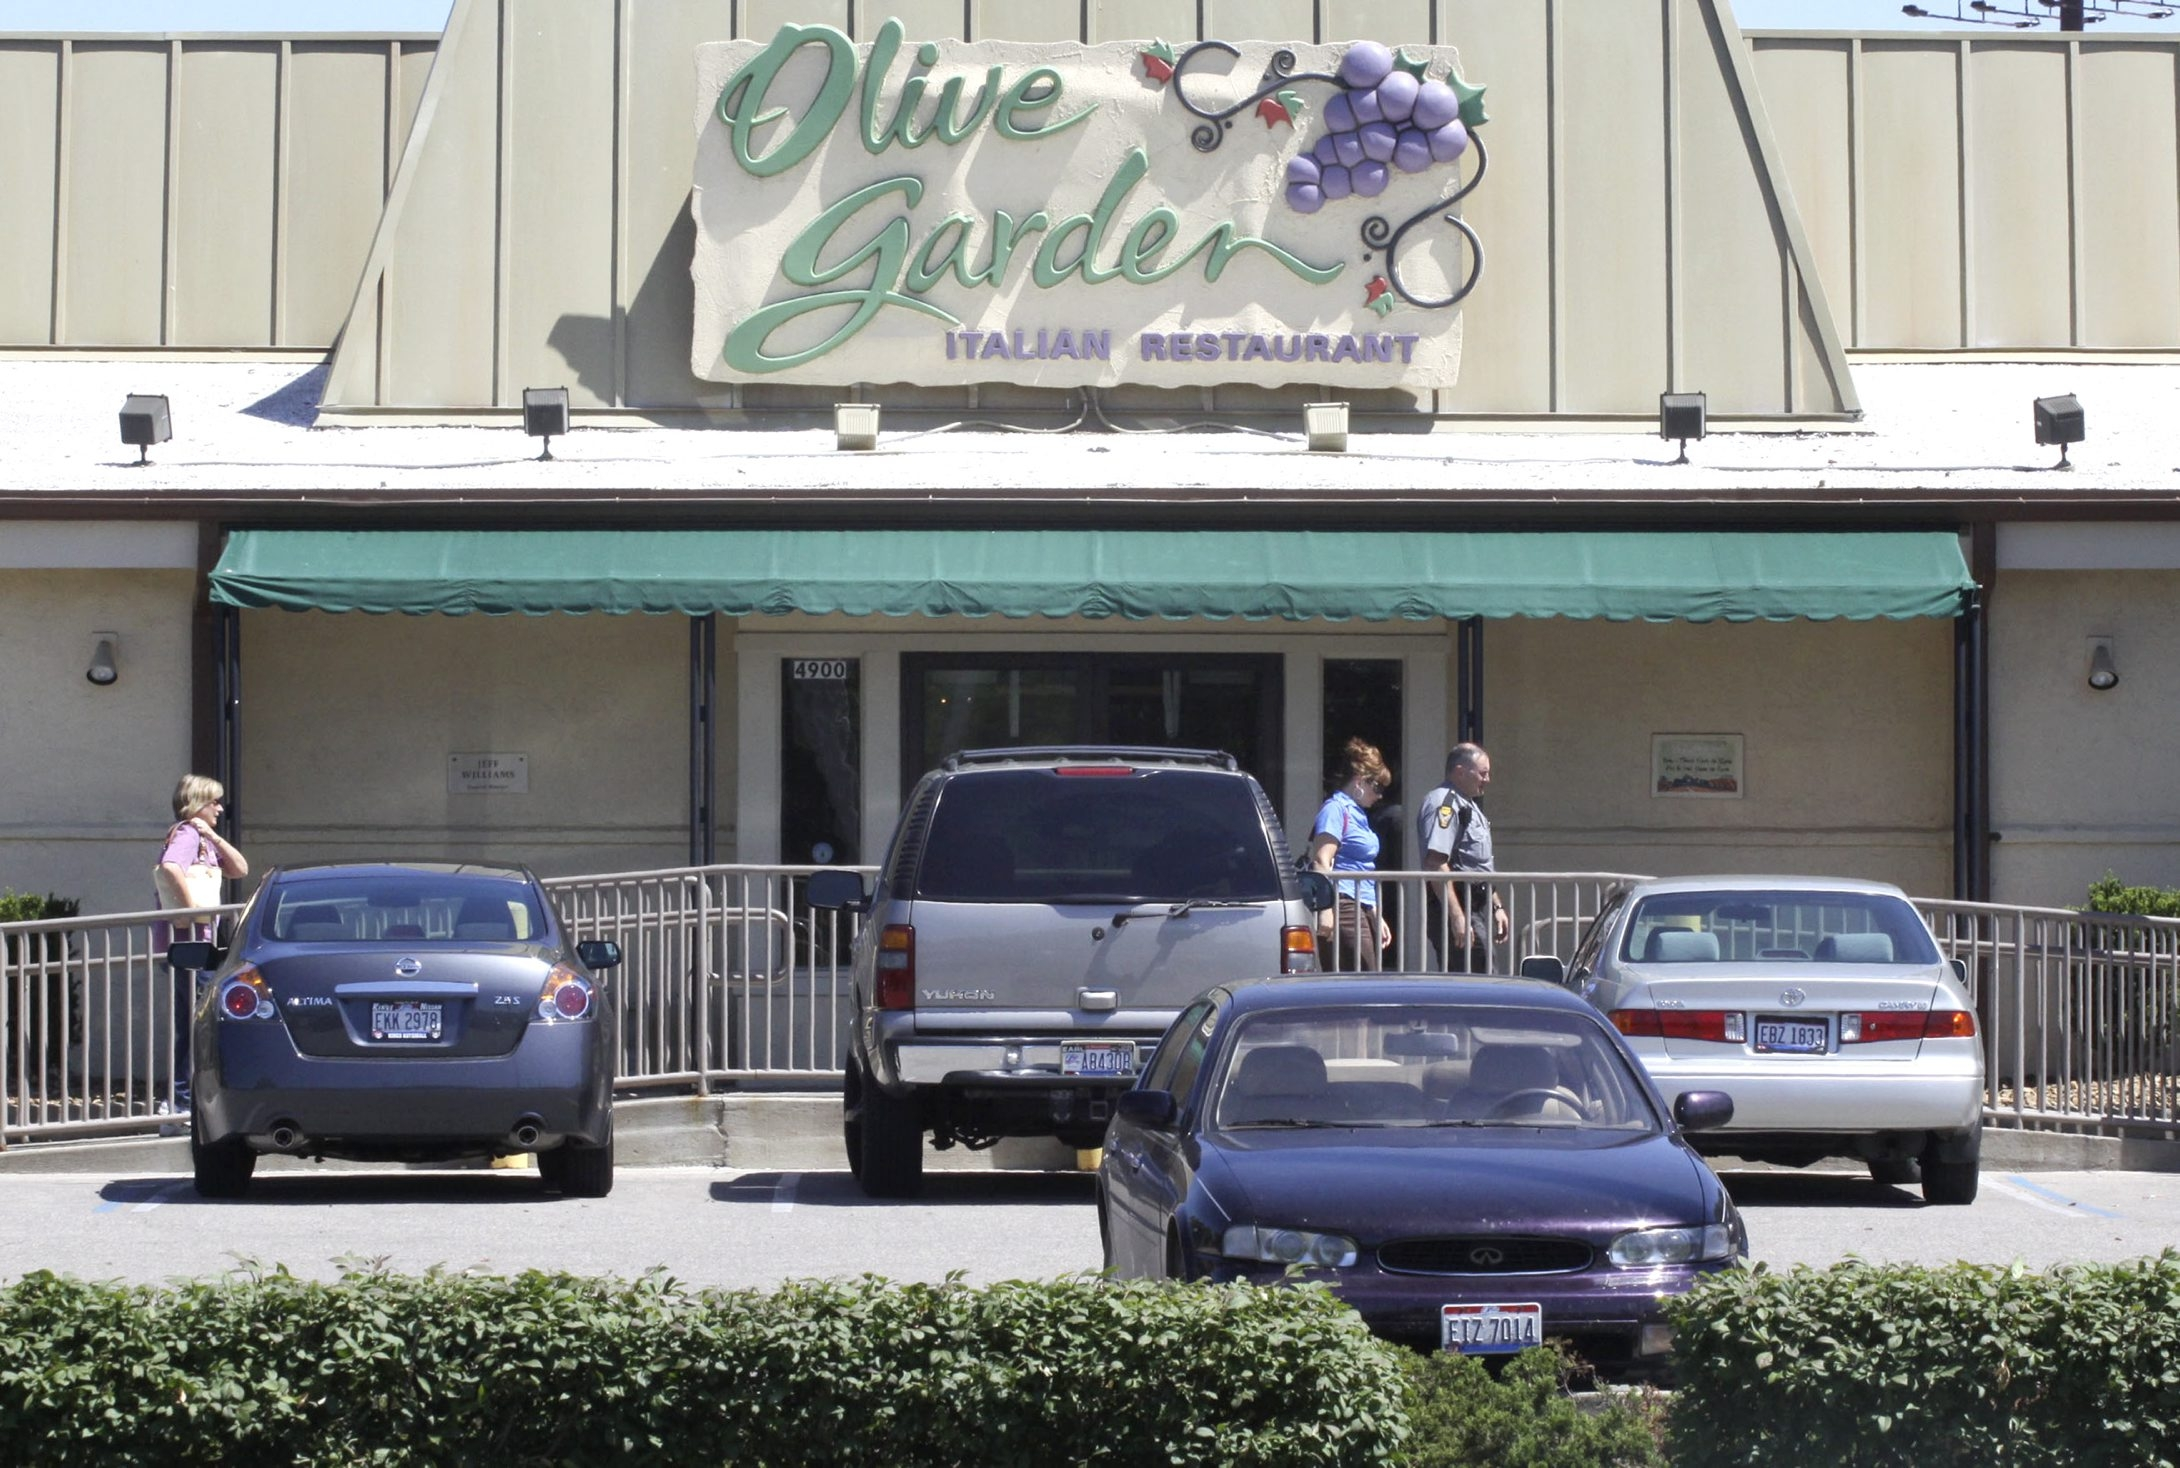 An Olive Garden restaurant sits in Cincinnati, Ohio, U.S., on Tuesday, June 23, 2009. Darden Restaurants Inc., operator of the Olive Garden, is the world's largest company-owned and operated casual dining company with almost $6.7 billion in annual sales and approximately 180,000 employees. Photographer: Tom Uhlman/Bloomberg News